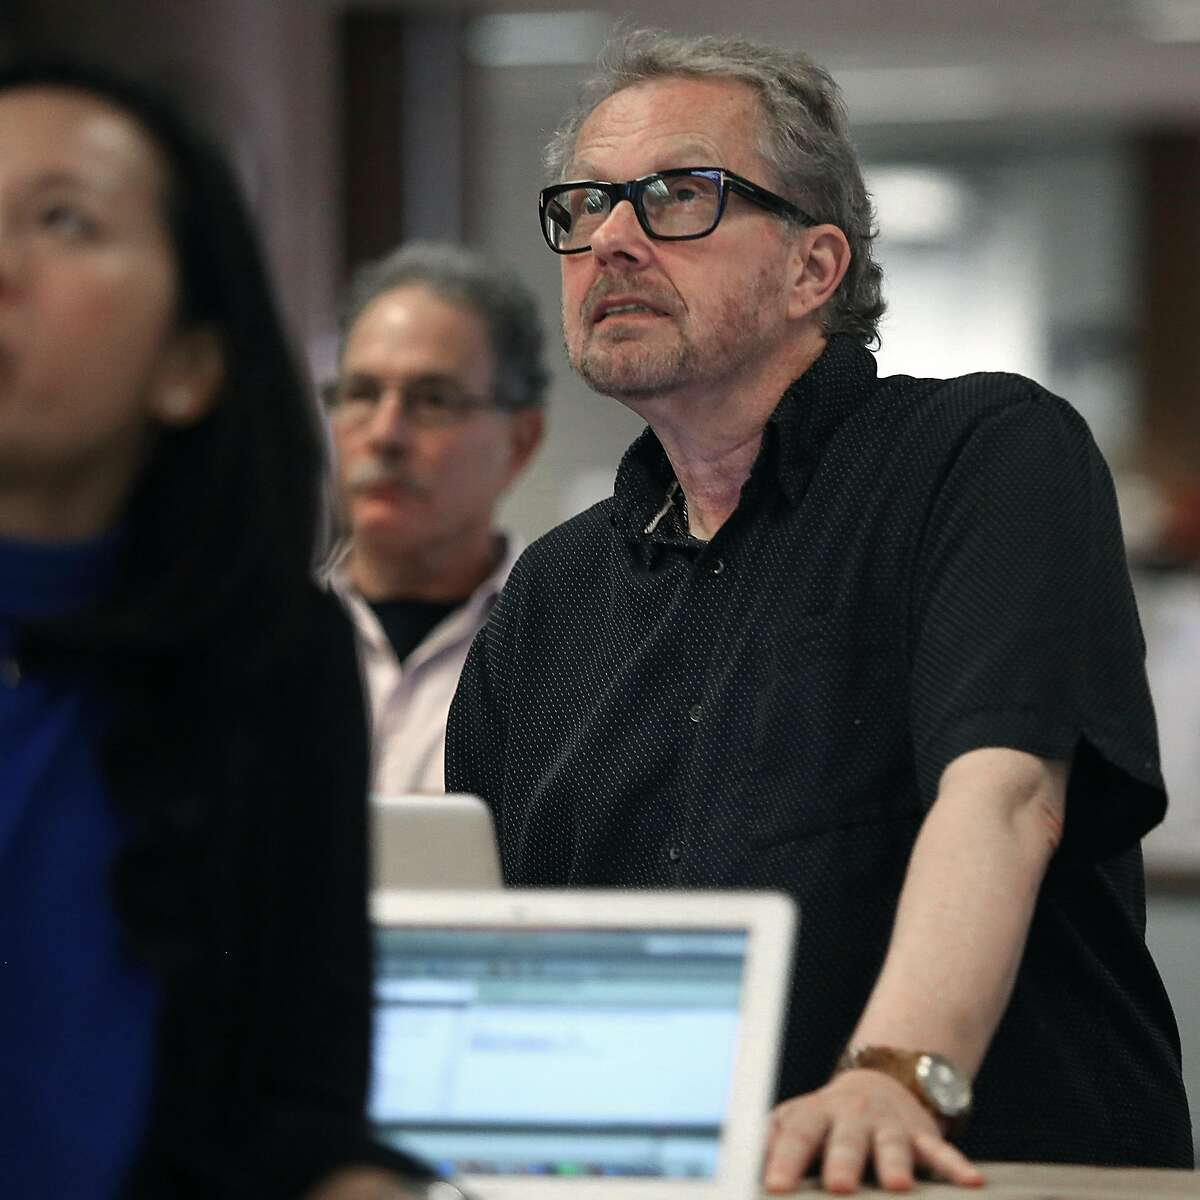 San Francisco Chronicle assistant managing editor and TV critic David Wiegand at a meeting in the newsroom in San Francisco, Calif., on Tuesday, July 14, 2015.